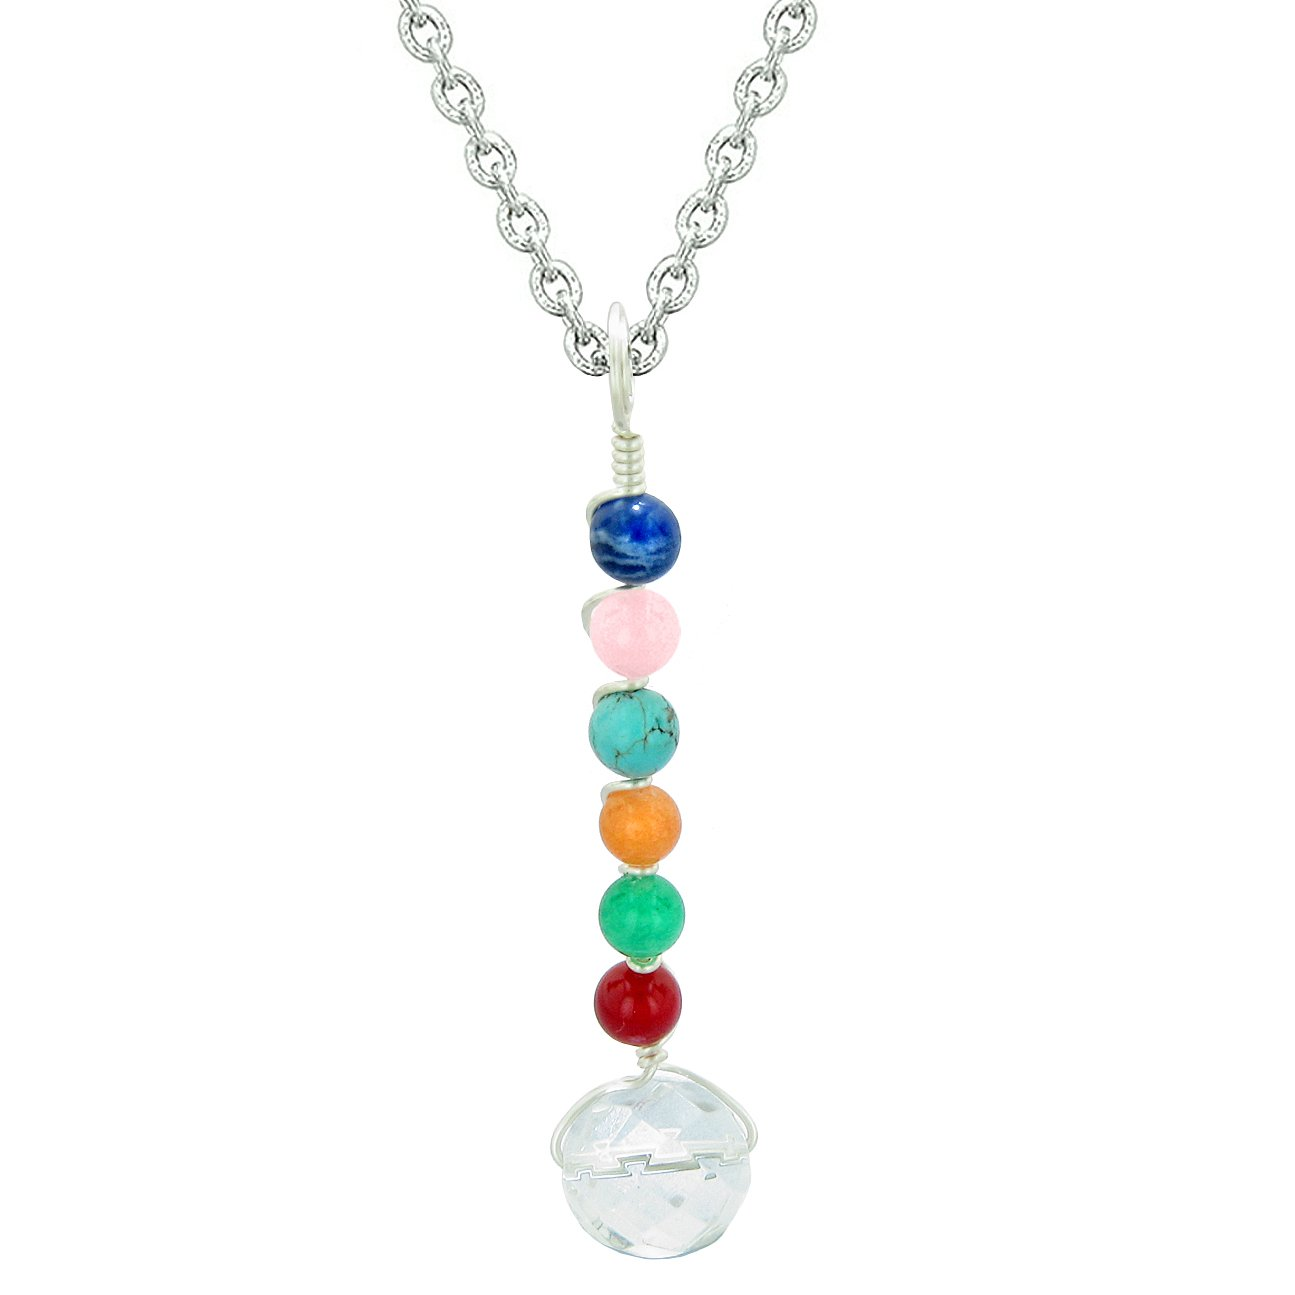 Chakra Wish Bead Amulet Faceted Crystal Quartz Colorful Gemstones Lucky Pendant 18 Inch Necklace